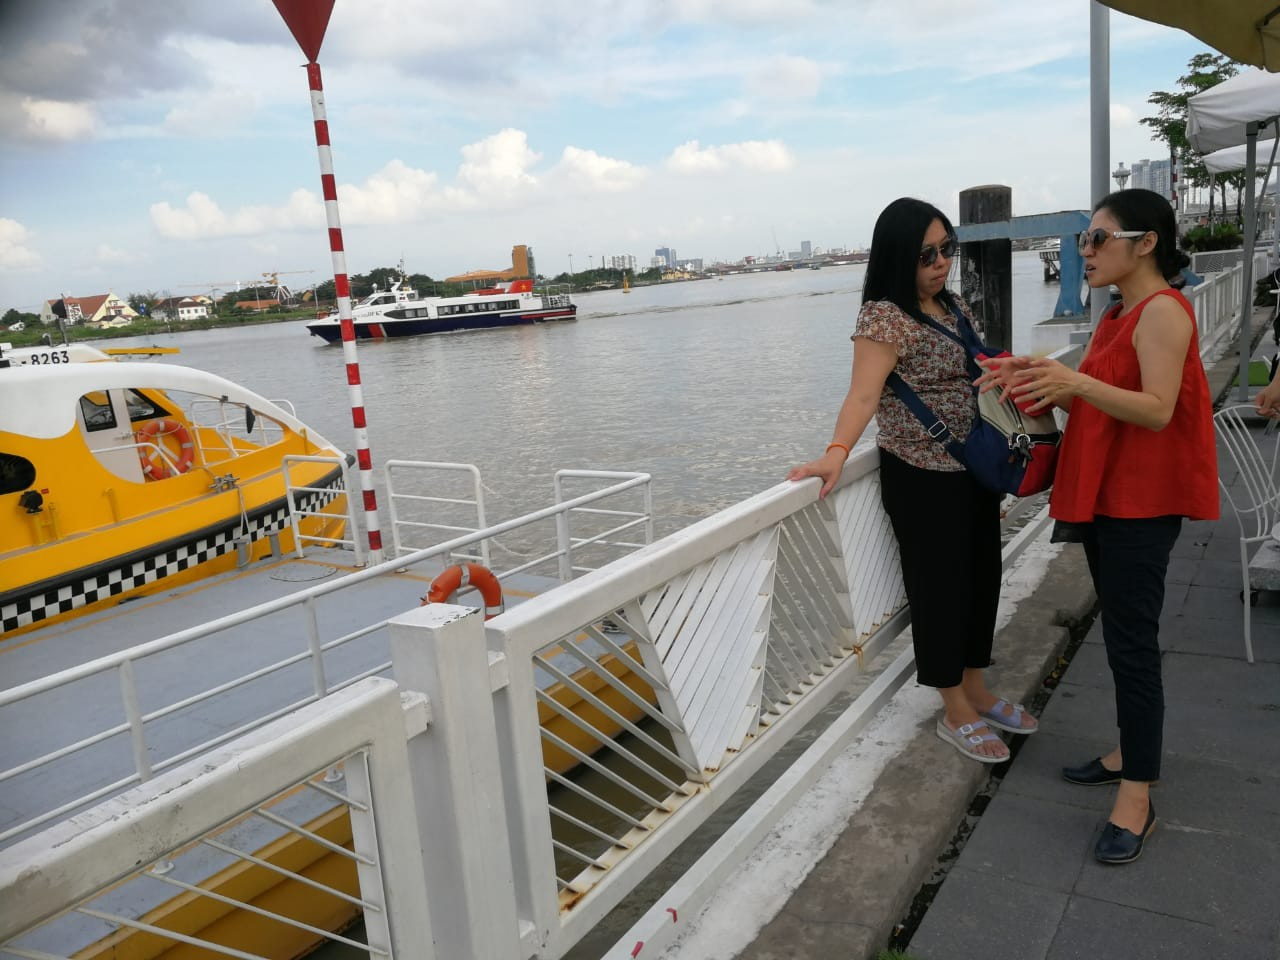 Tourists wait for the departure of the Saigon water bus at Bach Dang Station in Ho Chi Minh City, Vietnam, on Aug. 28.